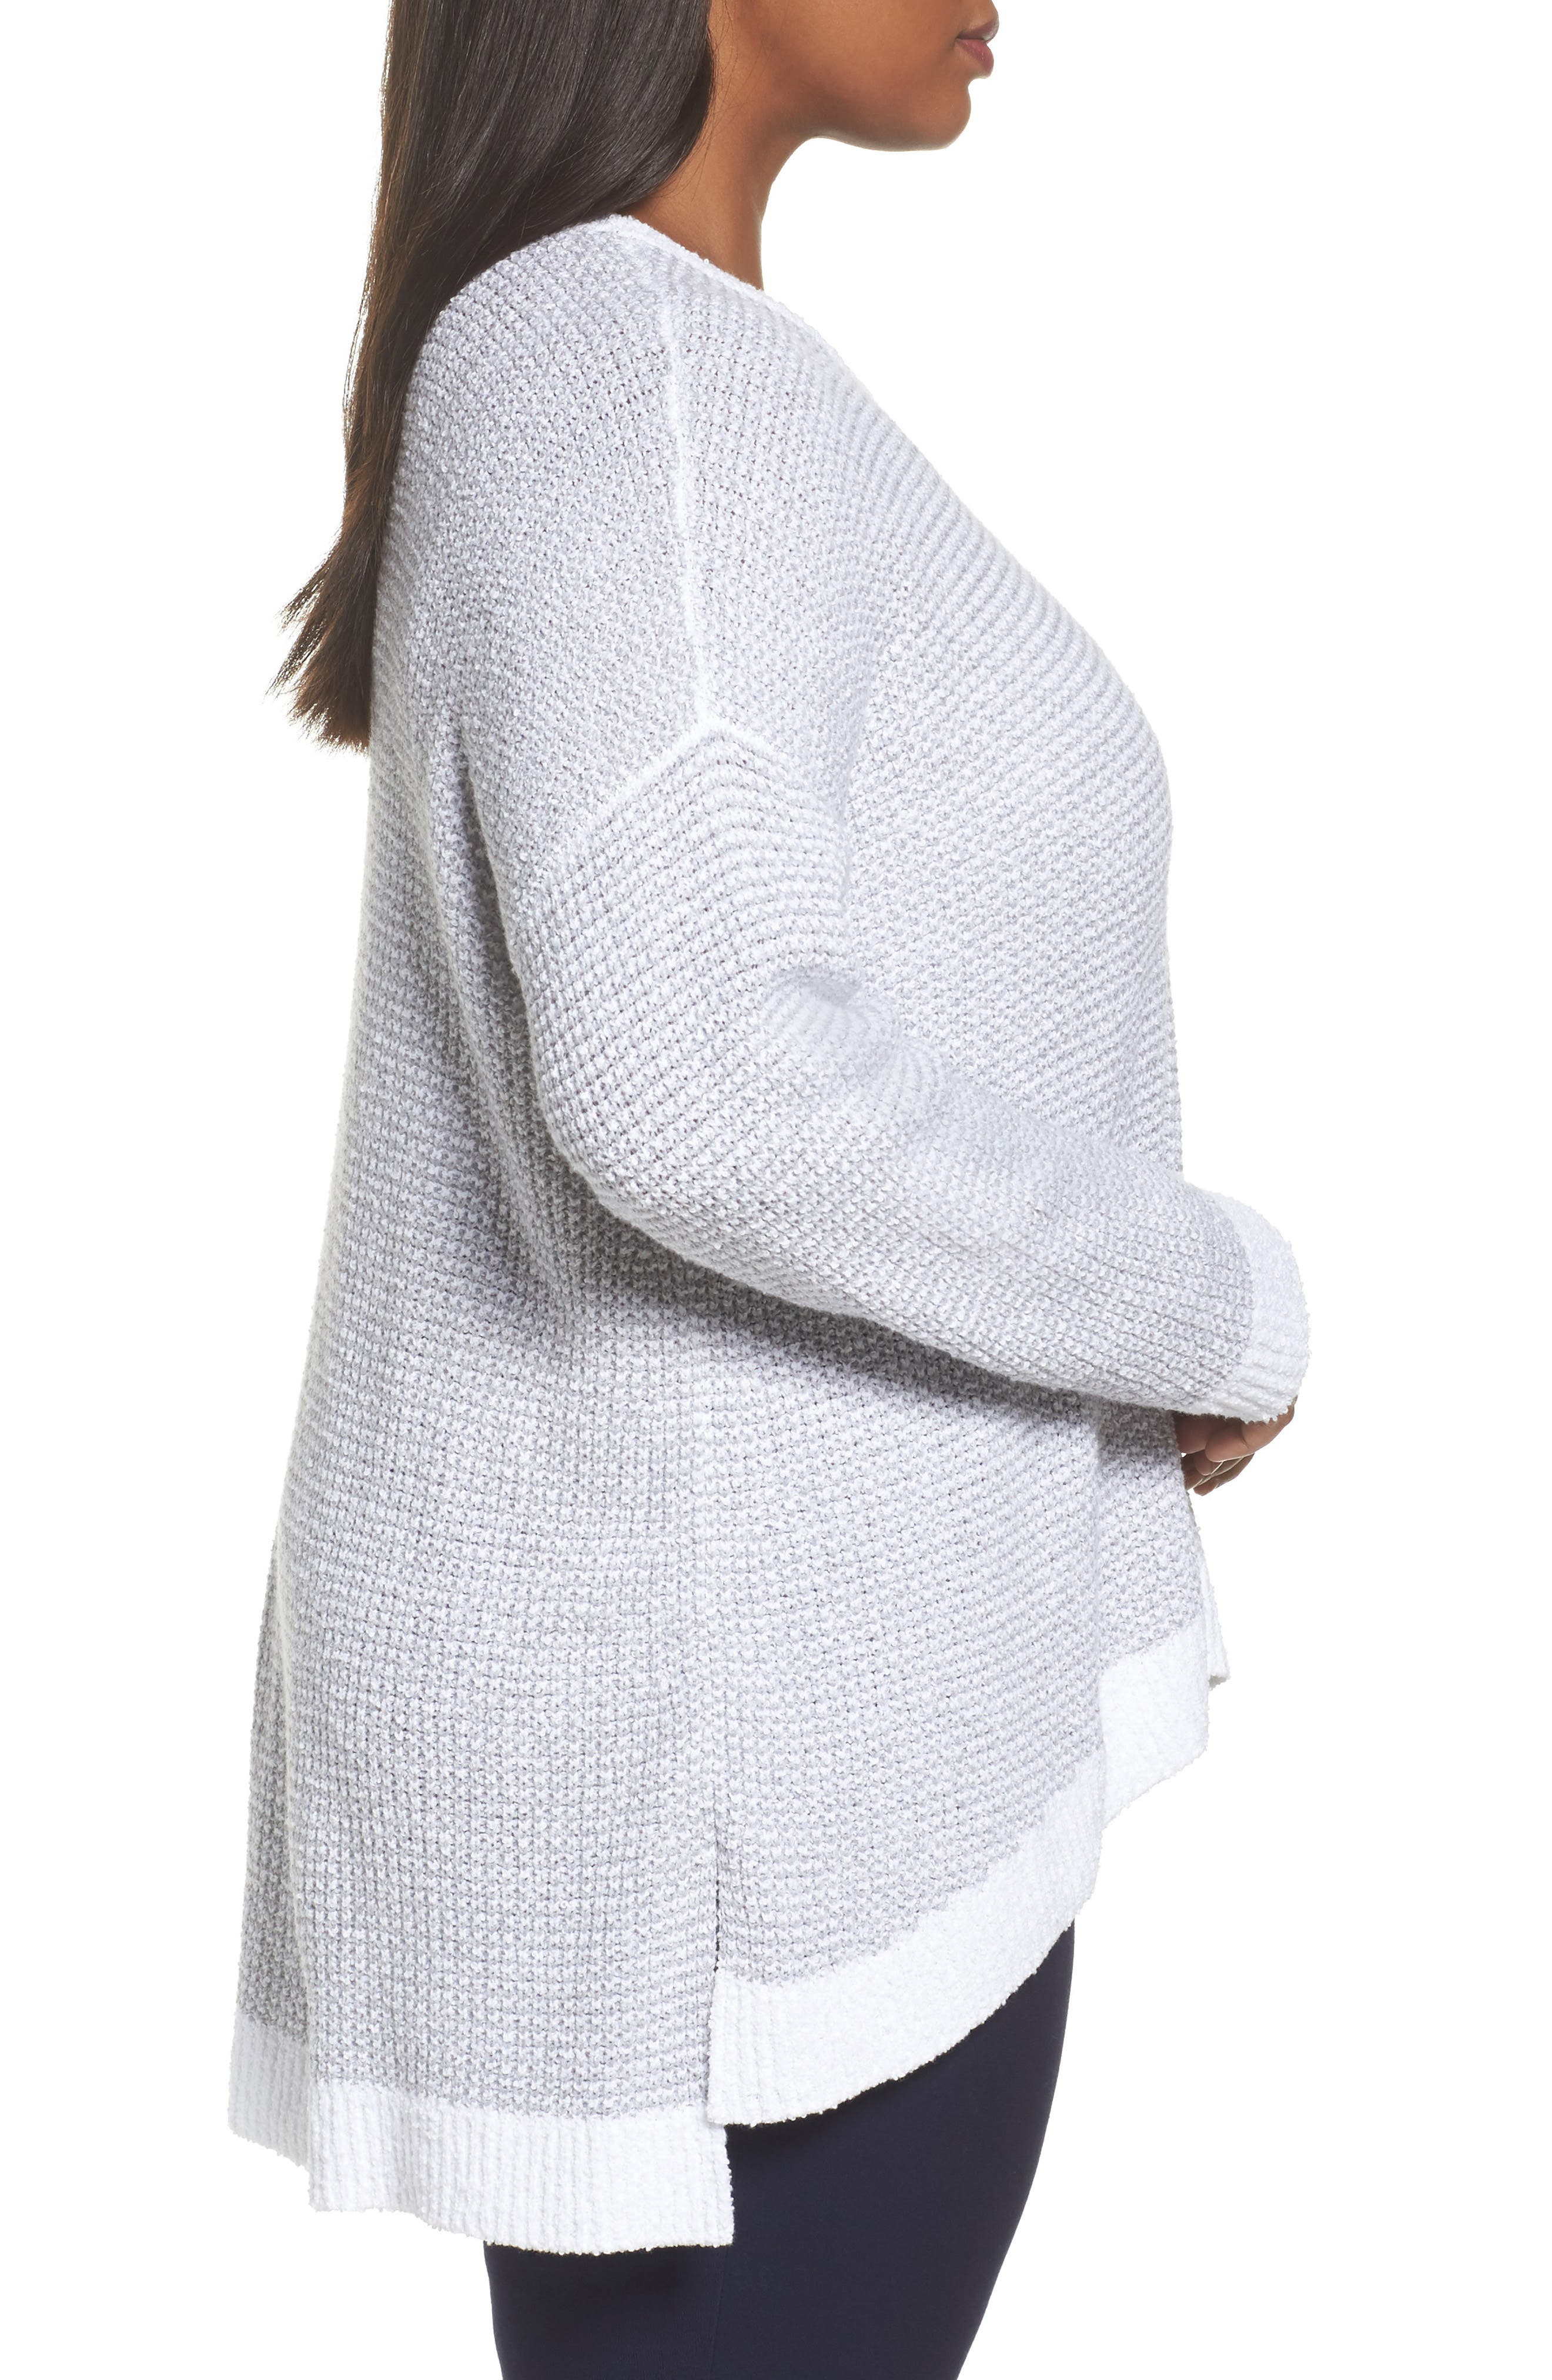 Waffled Organic Cotton Sweater,                             Alternate thumbnail 3, color,